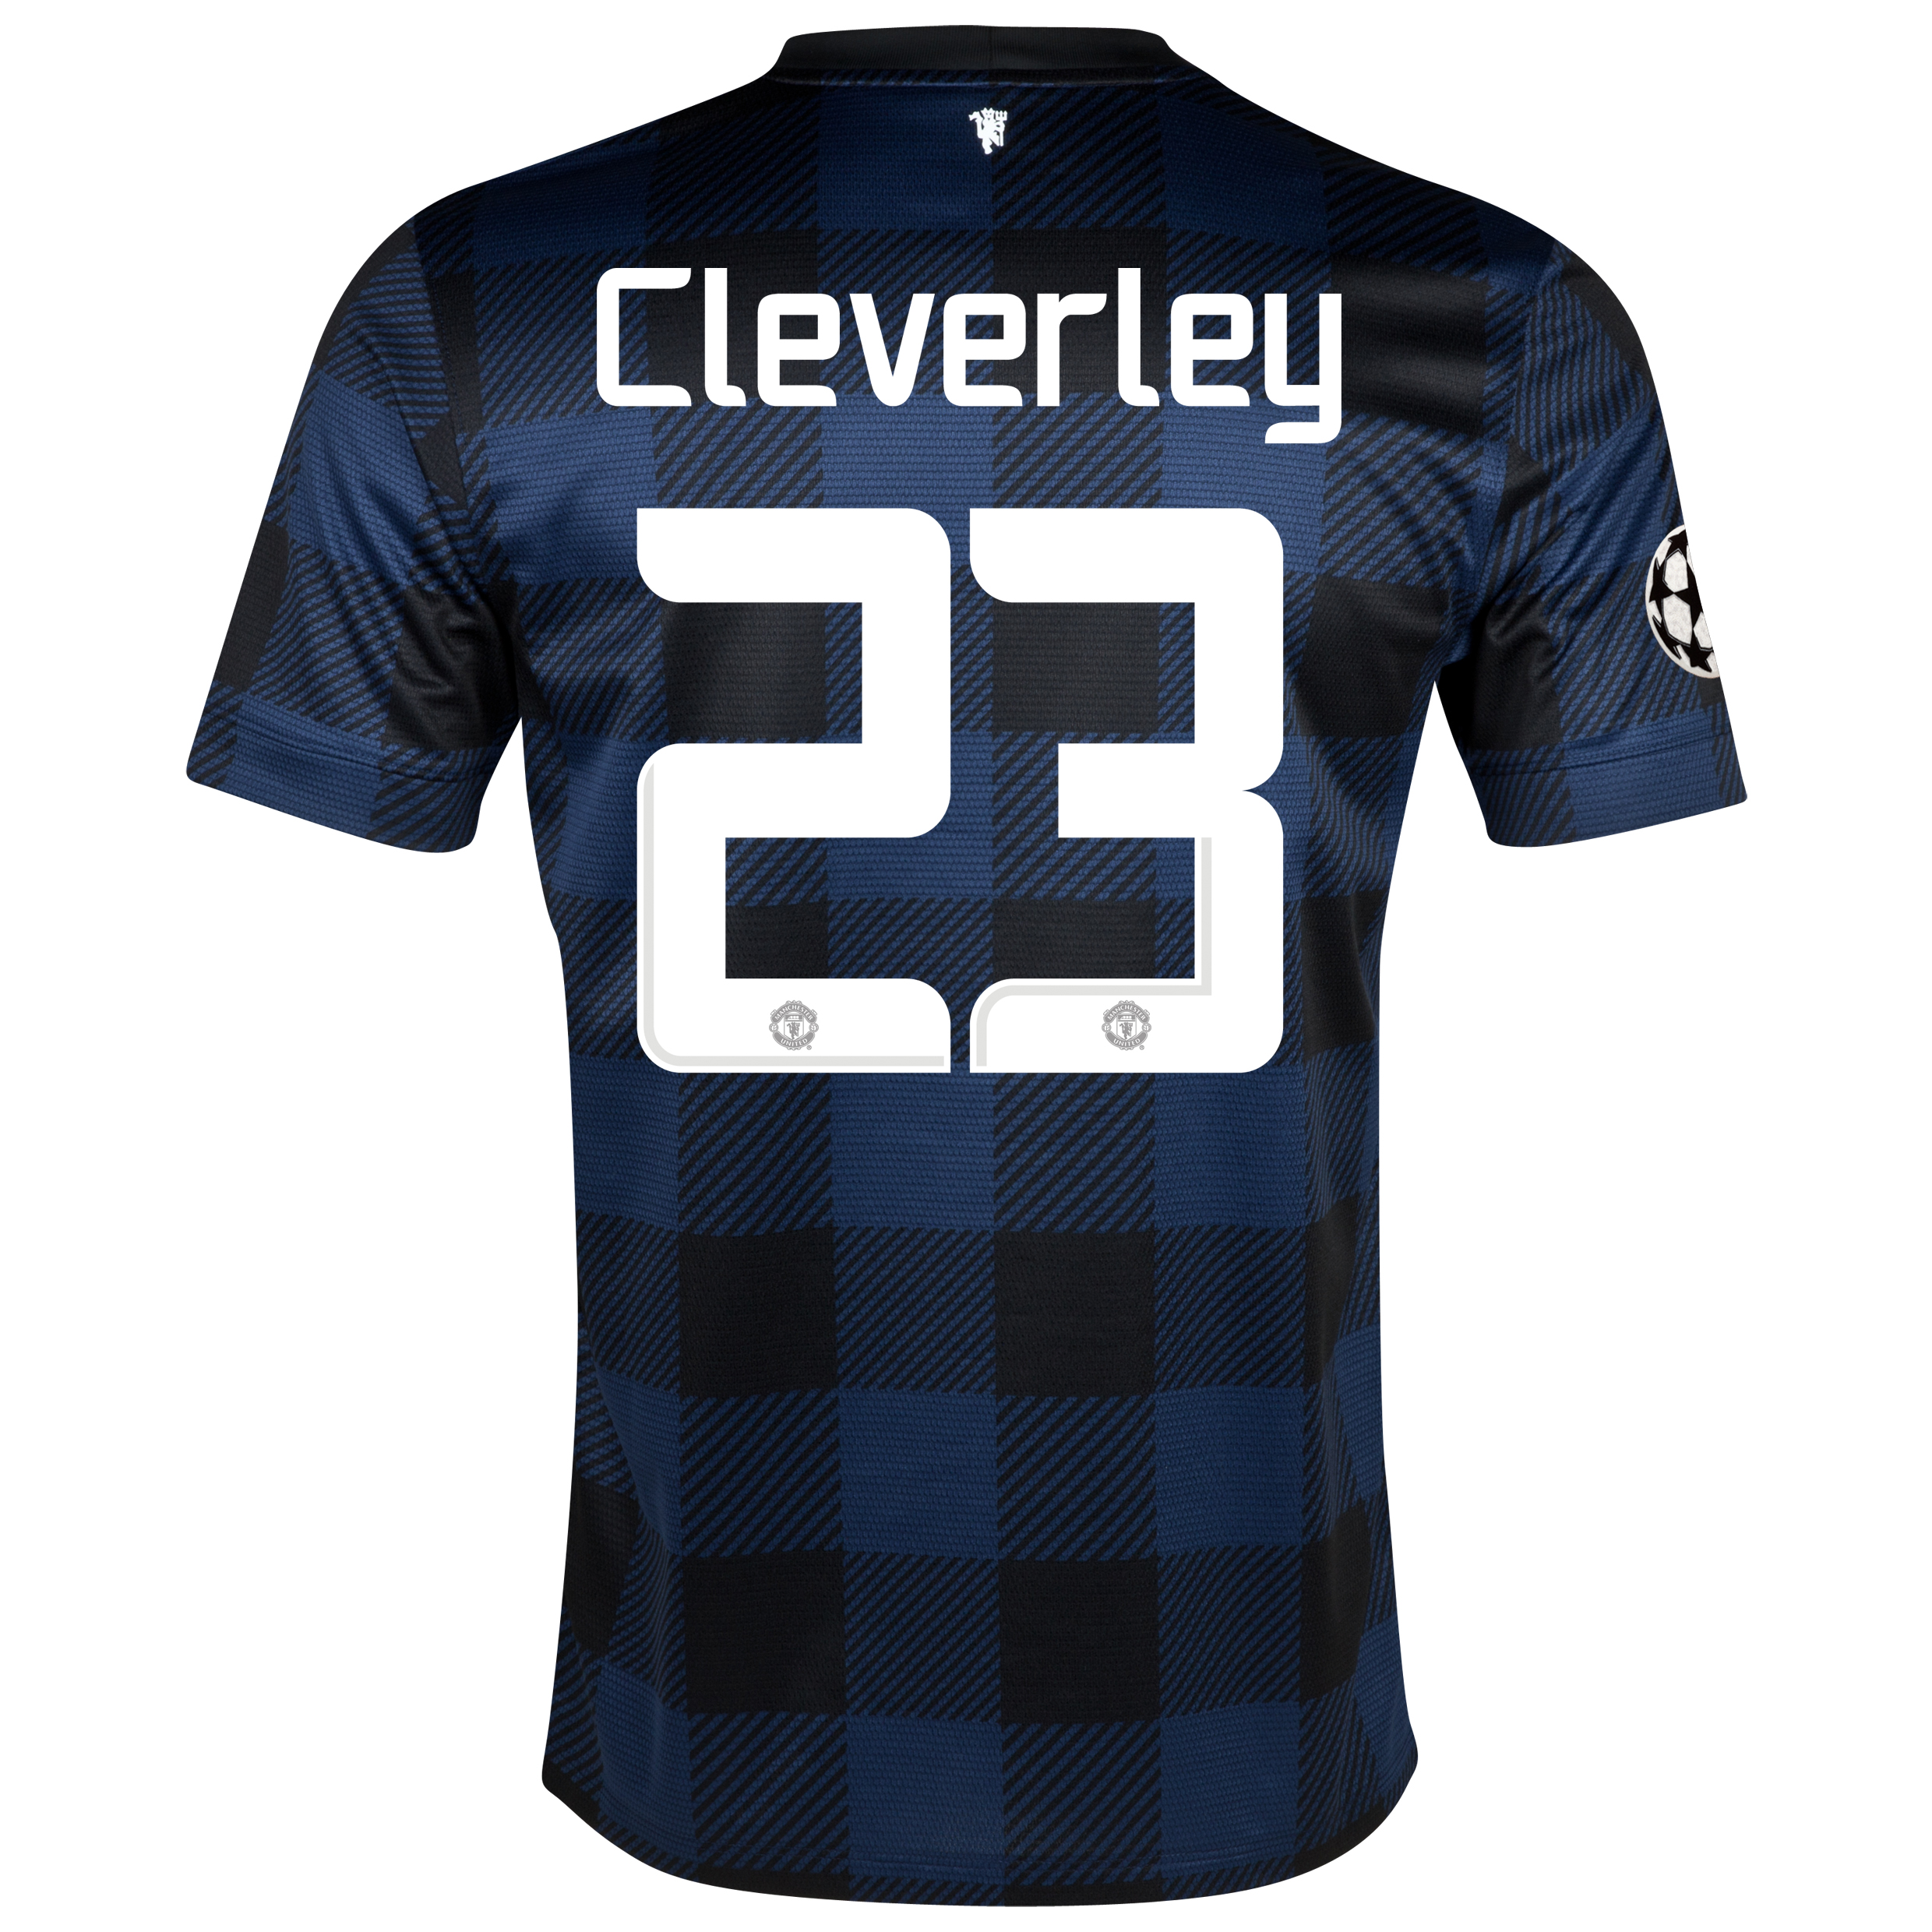 Manchester United UEFA Champions League Away Shirt 2013/14 - Kids with Cleverley 23 printing